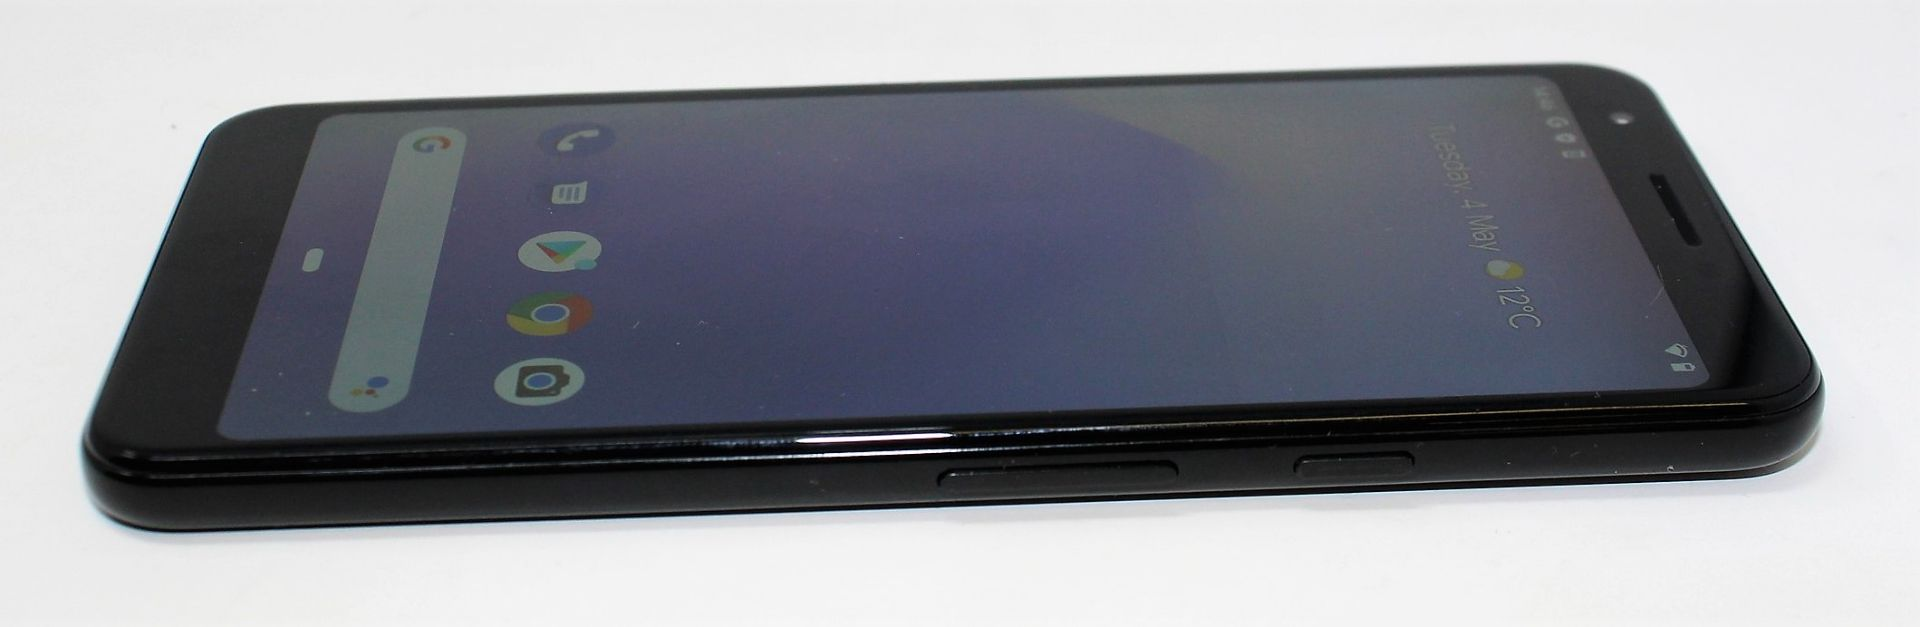 A pre-owned Google Pixel 3a G020G 64GB in Just Black (FRP clear) (Checkmend report ID: CM16922336- - Image 9 of 15